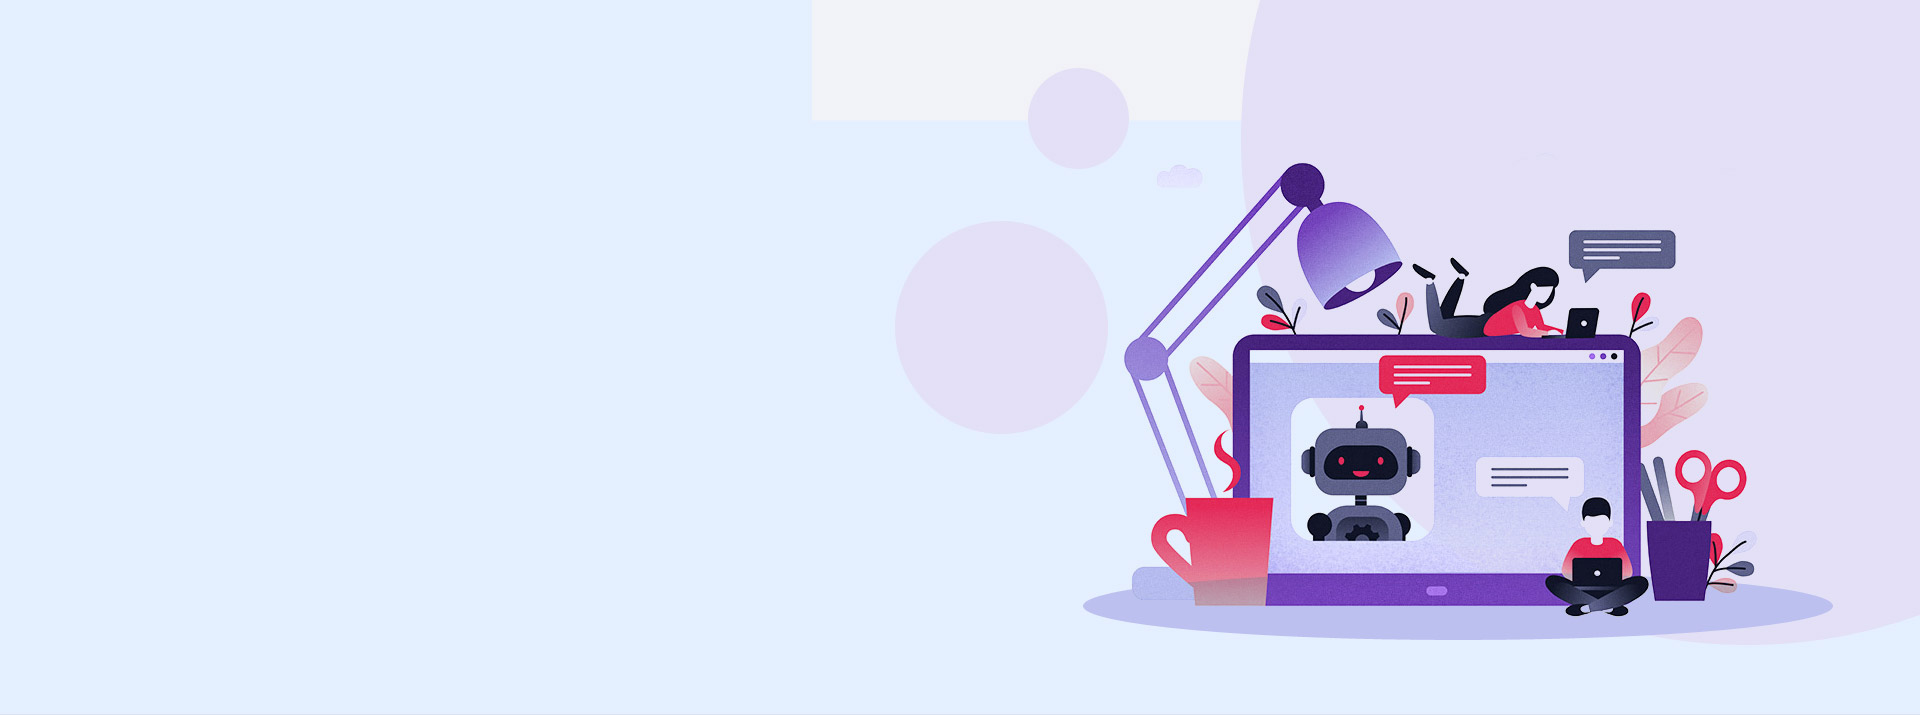 Banner image for custom ai chatbot development services